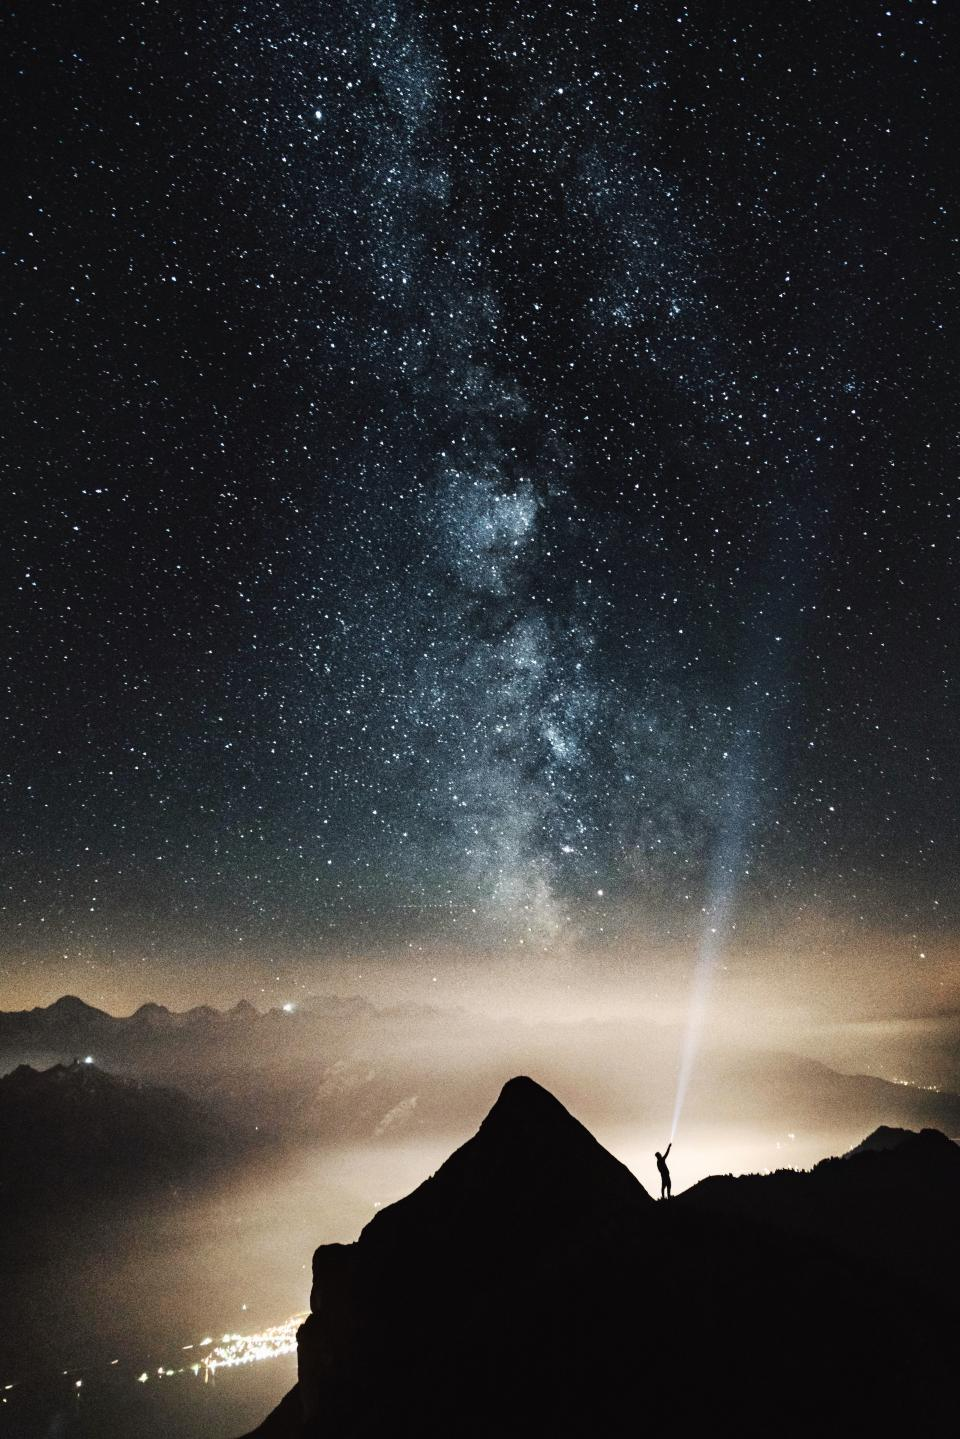 mountain valey hill people man alone dark night flashlight stars galaxies light